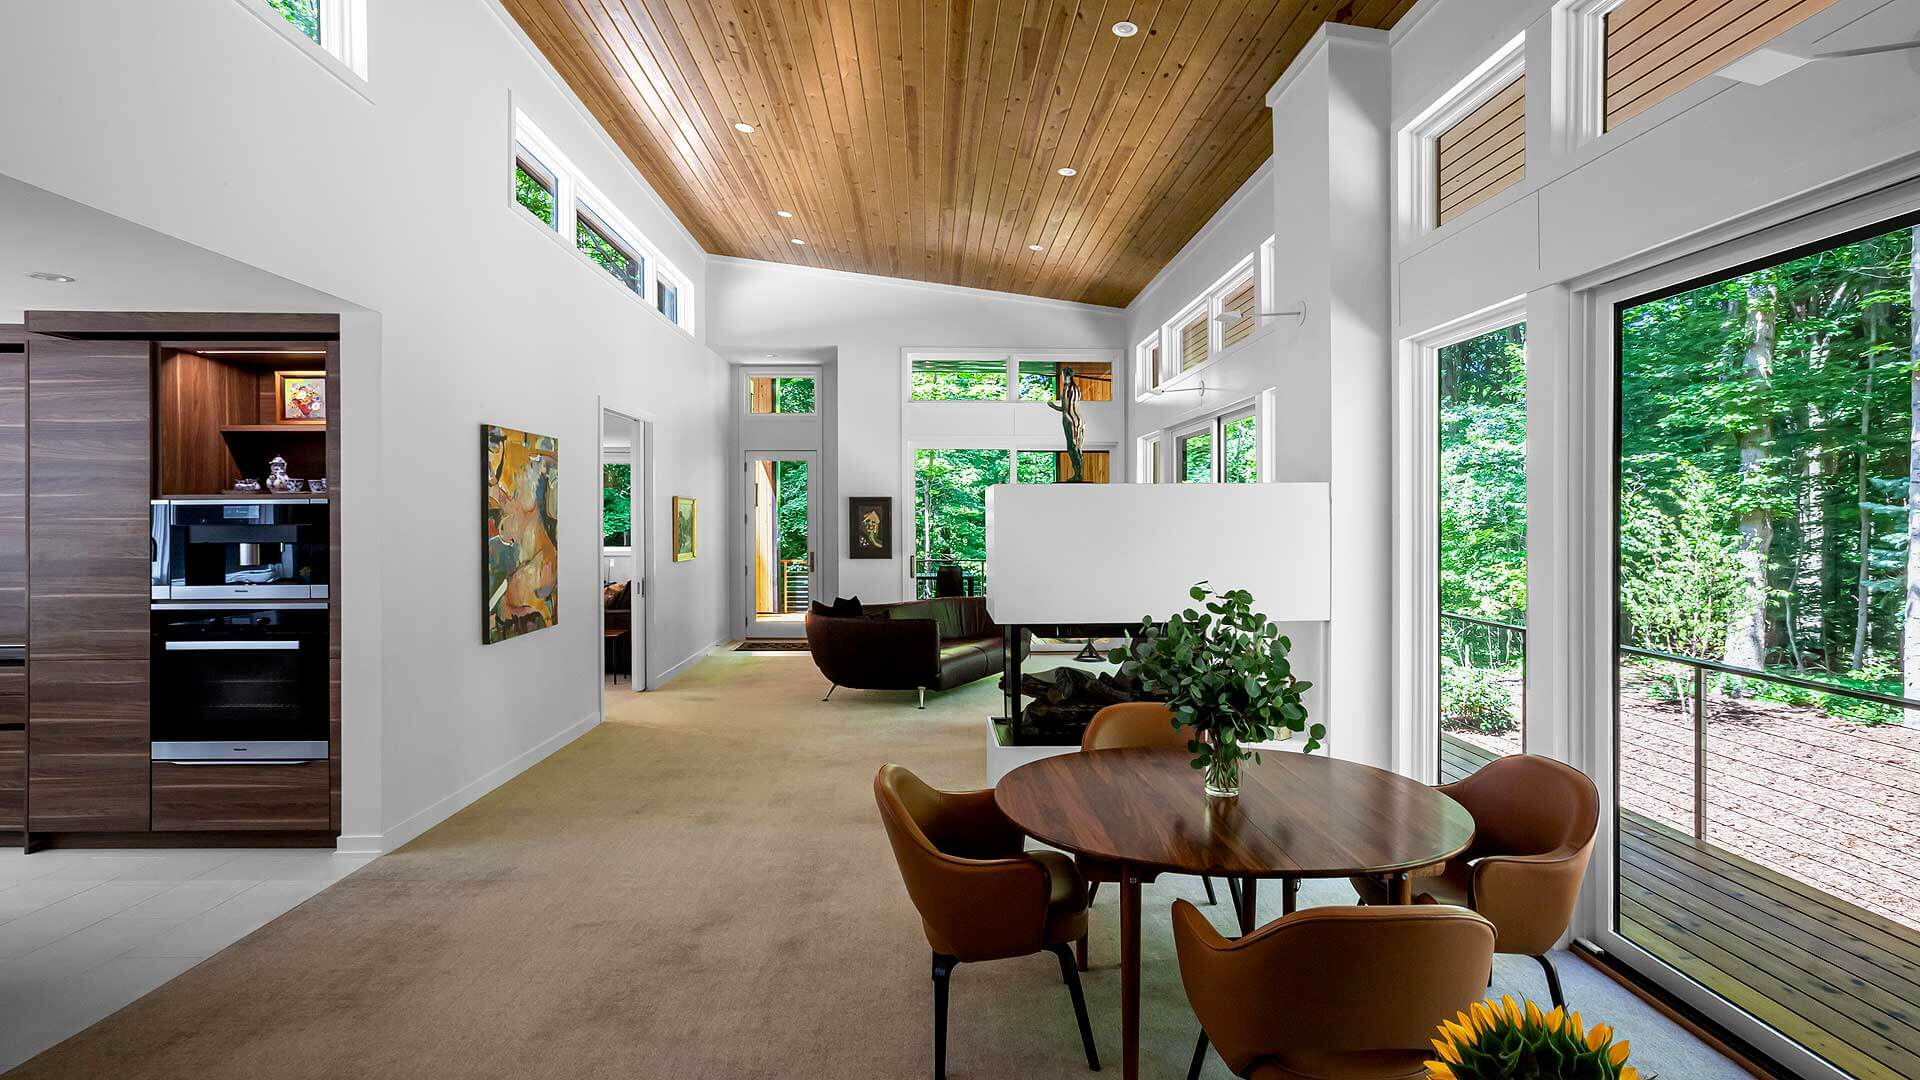 Open concept Living-Dining space optimizes natural light and panoramic views of Pier Cove Valley - Bridge House - Fenneville, Michigan - Lake Michigan